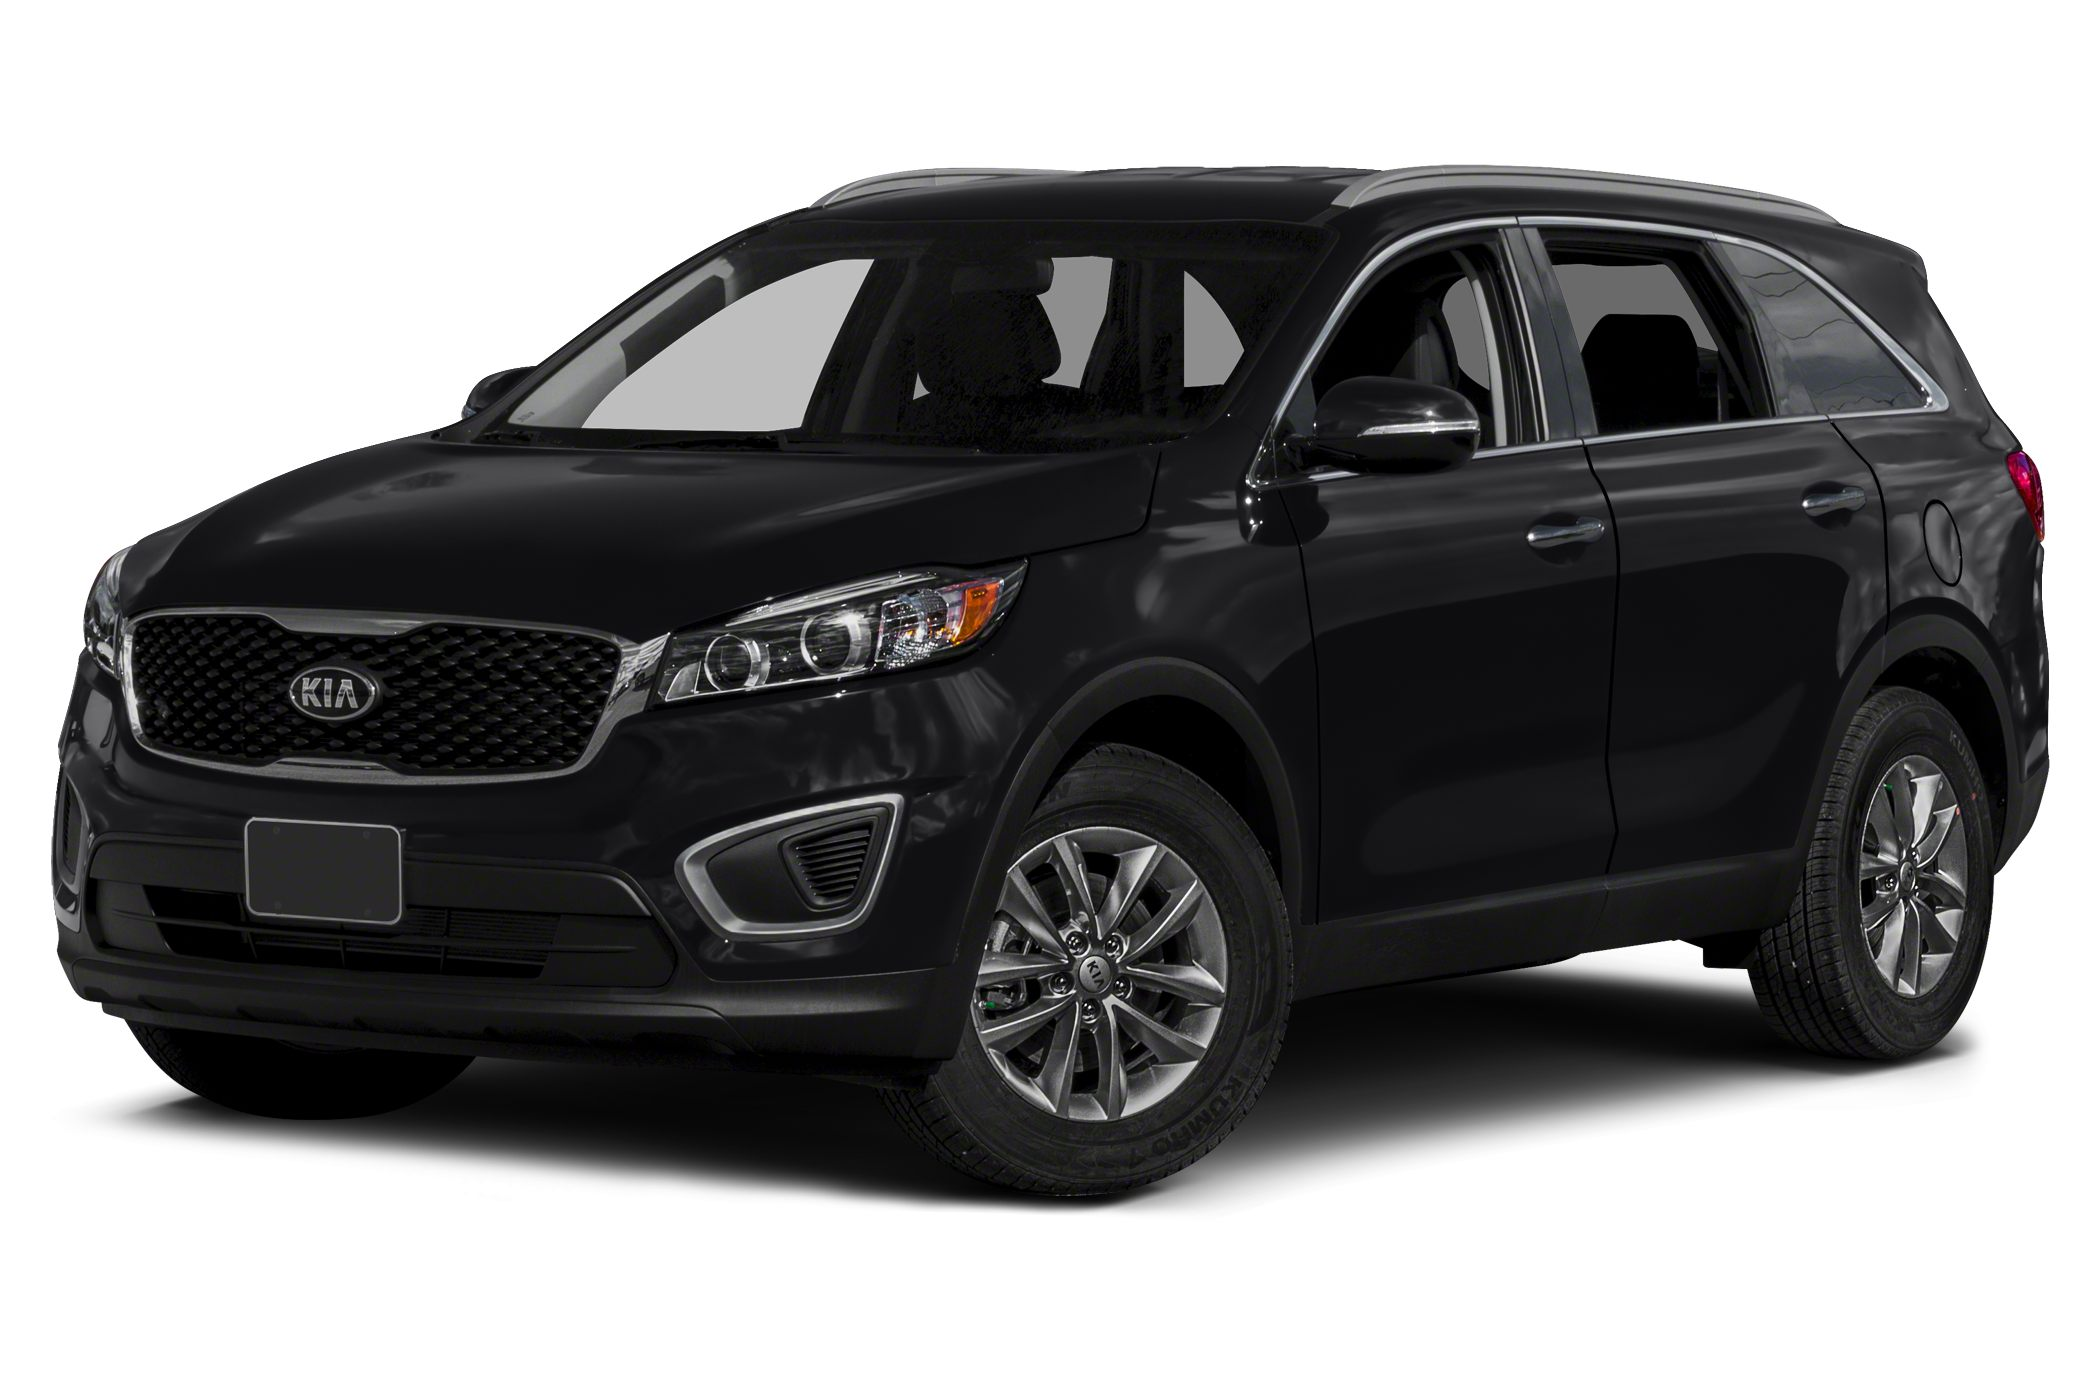 kia sorento lx 2 4 l 2016 neuf longueuil longueuil kia. Black Bedroom Furniture Sets. Home Design Ideas